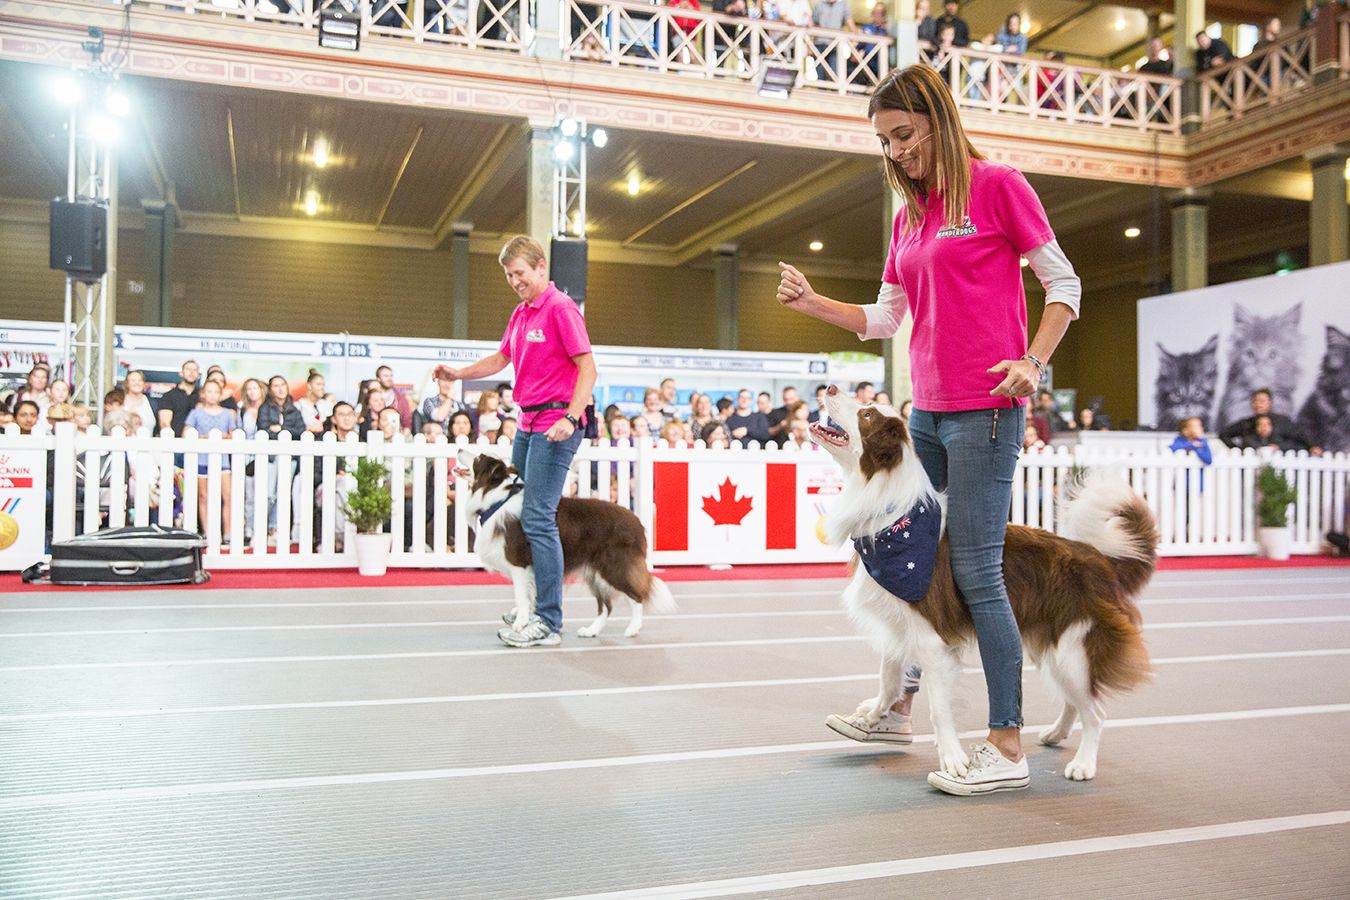 Melbourne Dog Lovers Show 2019 May 3 To 5 Australian Dog Lover Wonderdogs Thewonderdogs Dogtricks Dogloversshowmelbourne Dogl Dog Lovers Dog Friends Dogs Day Out